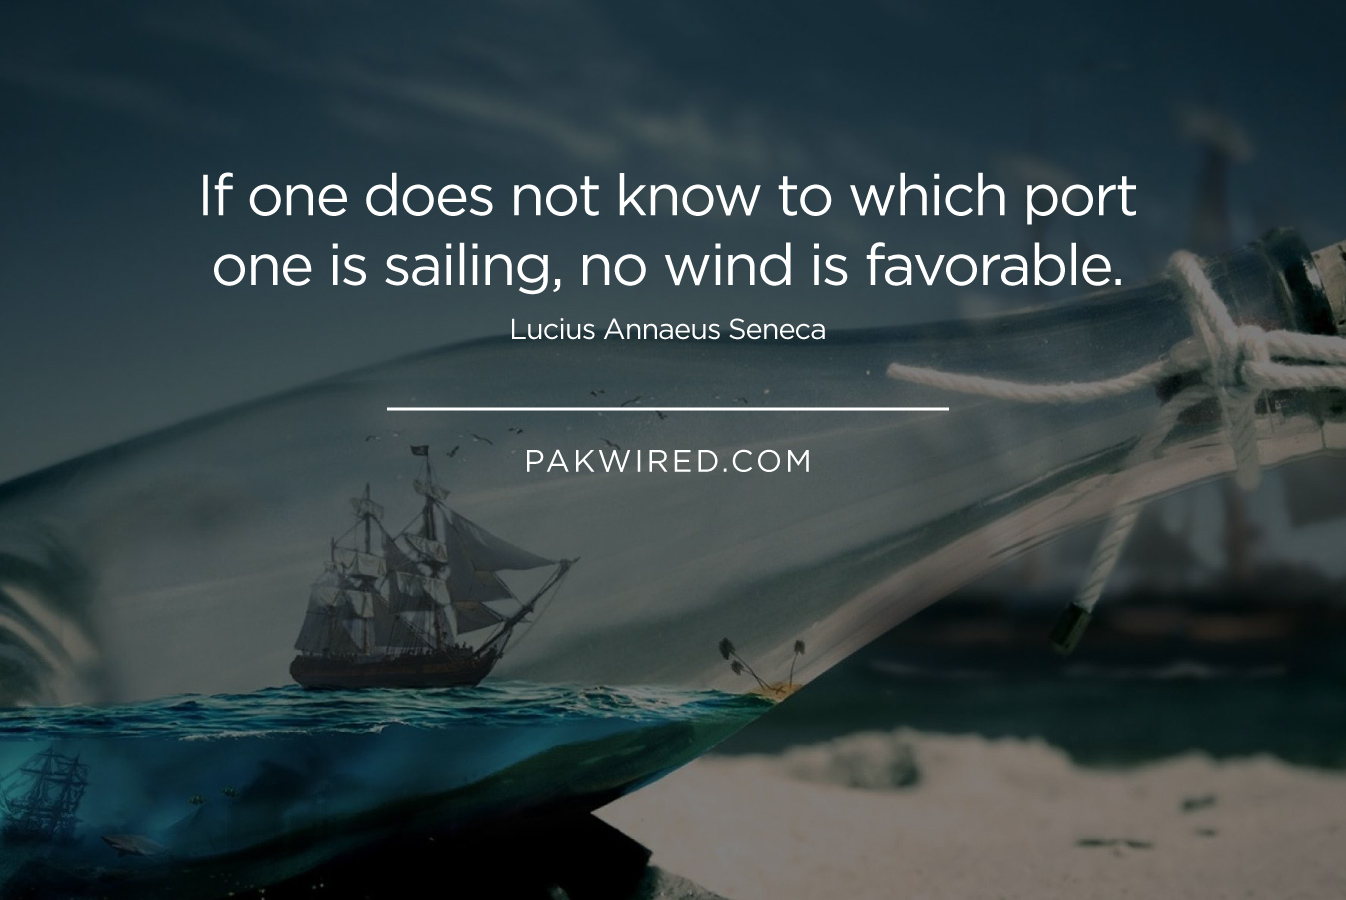 If one does not know to which port one is sailing, no wind is favorable. Lucius Annaeus Seneca